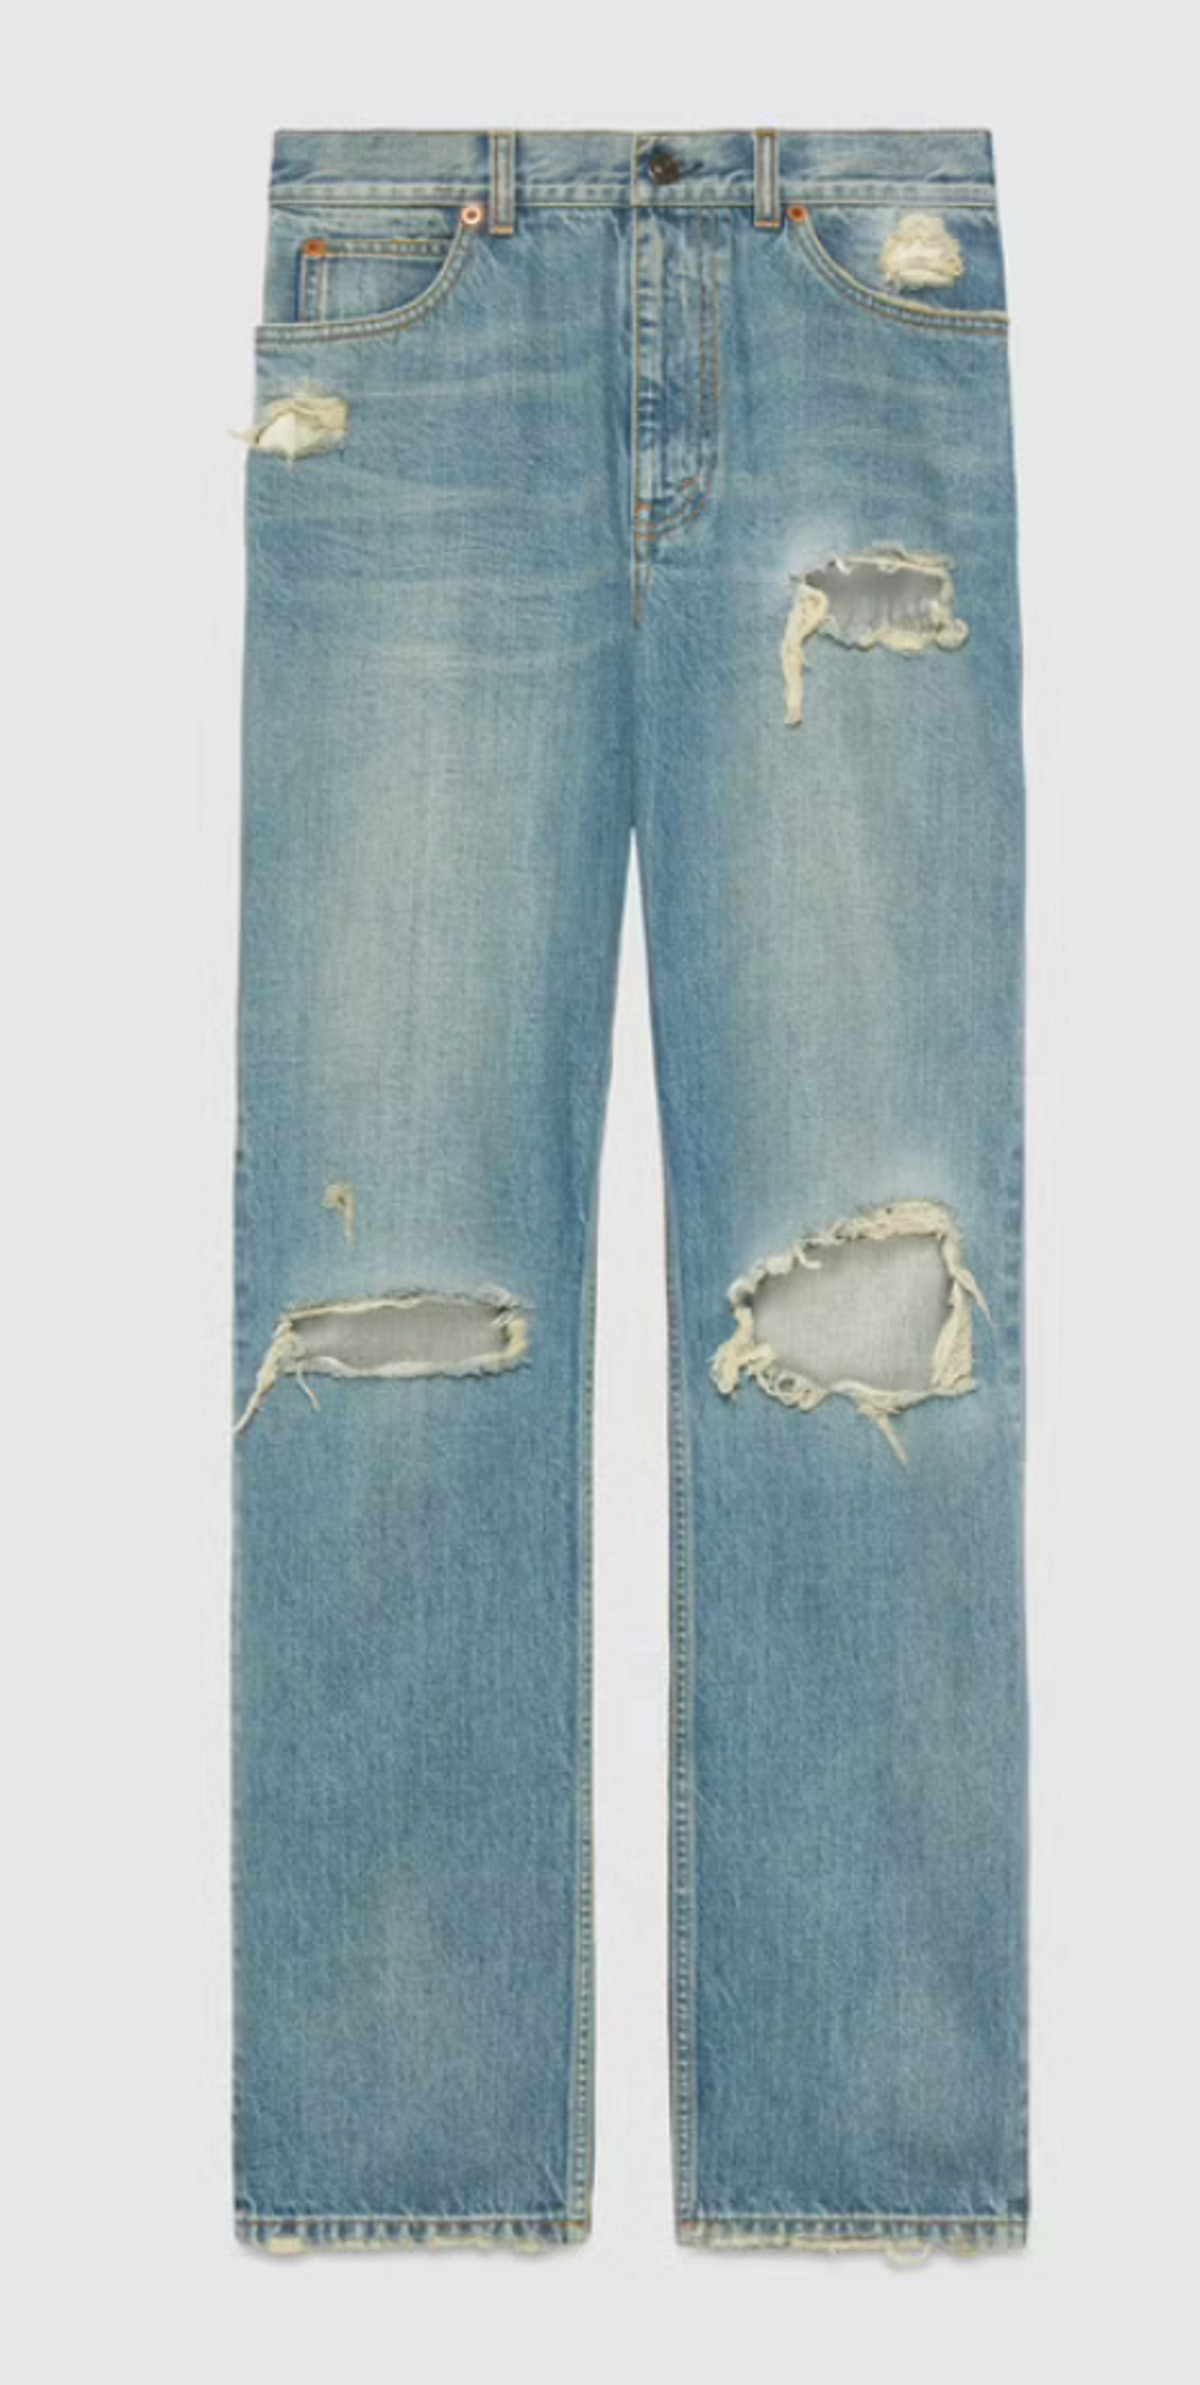 Gucci's distressed jeans in the color eco wash.